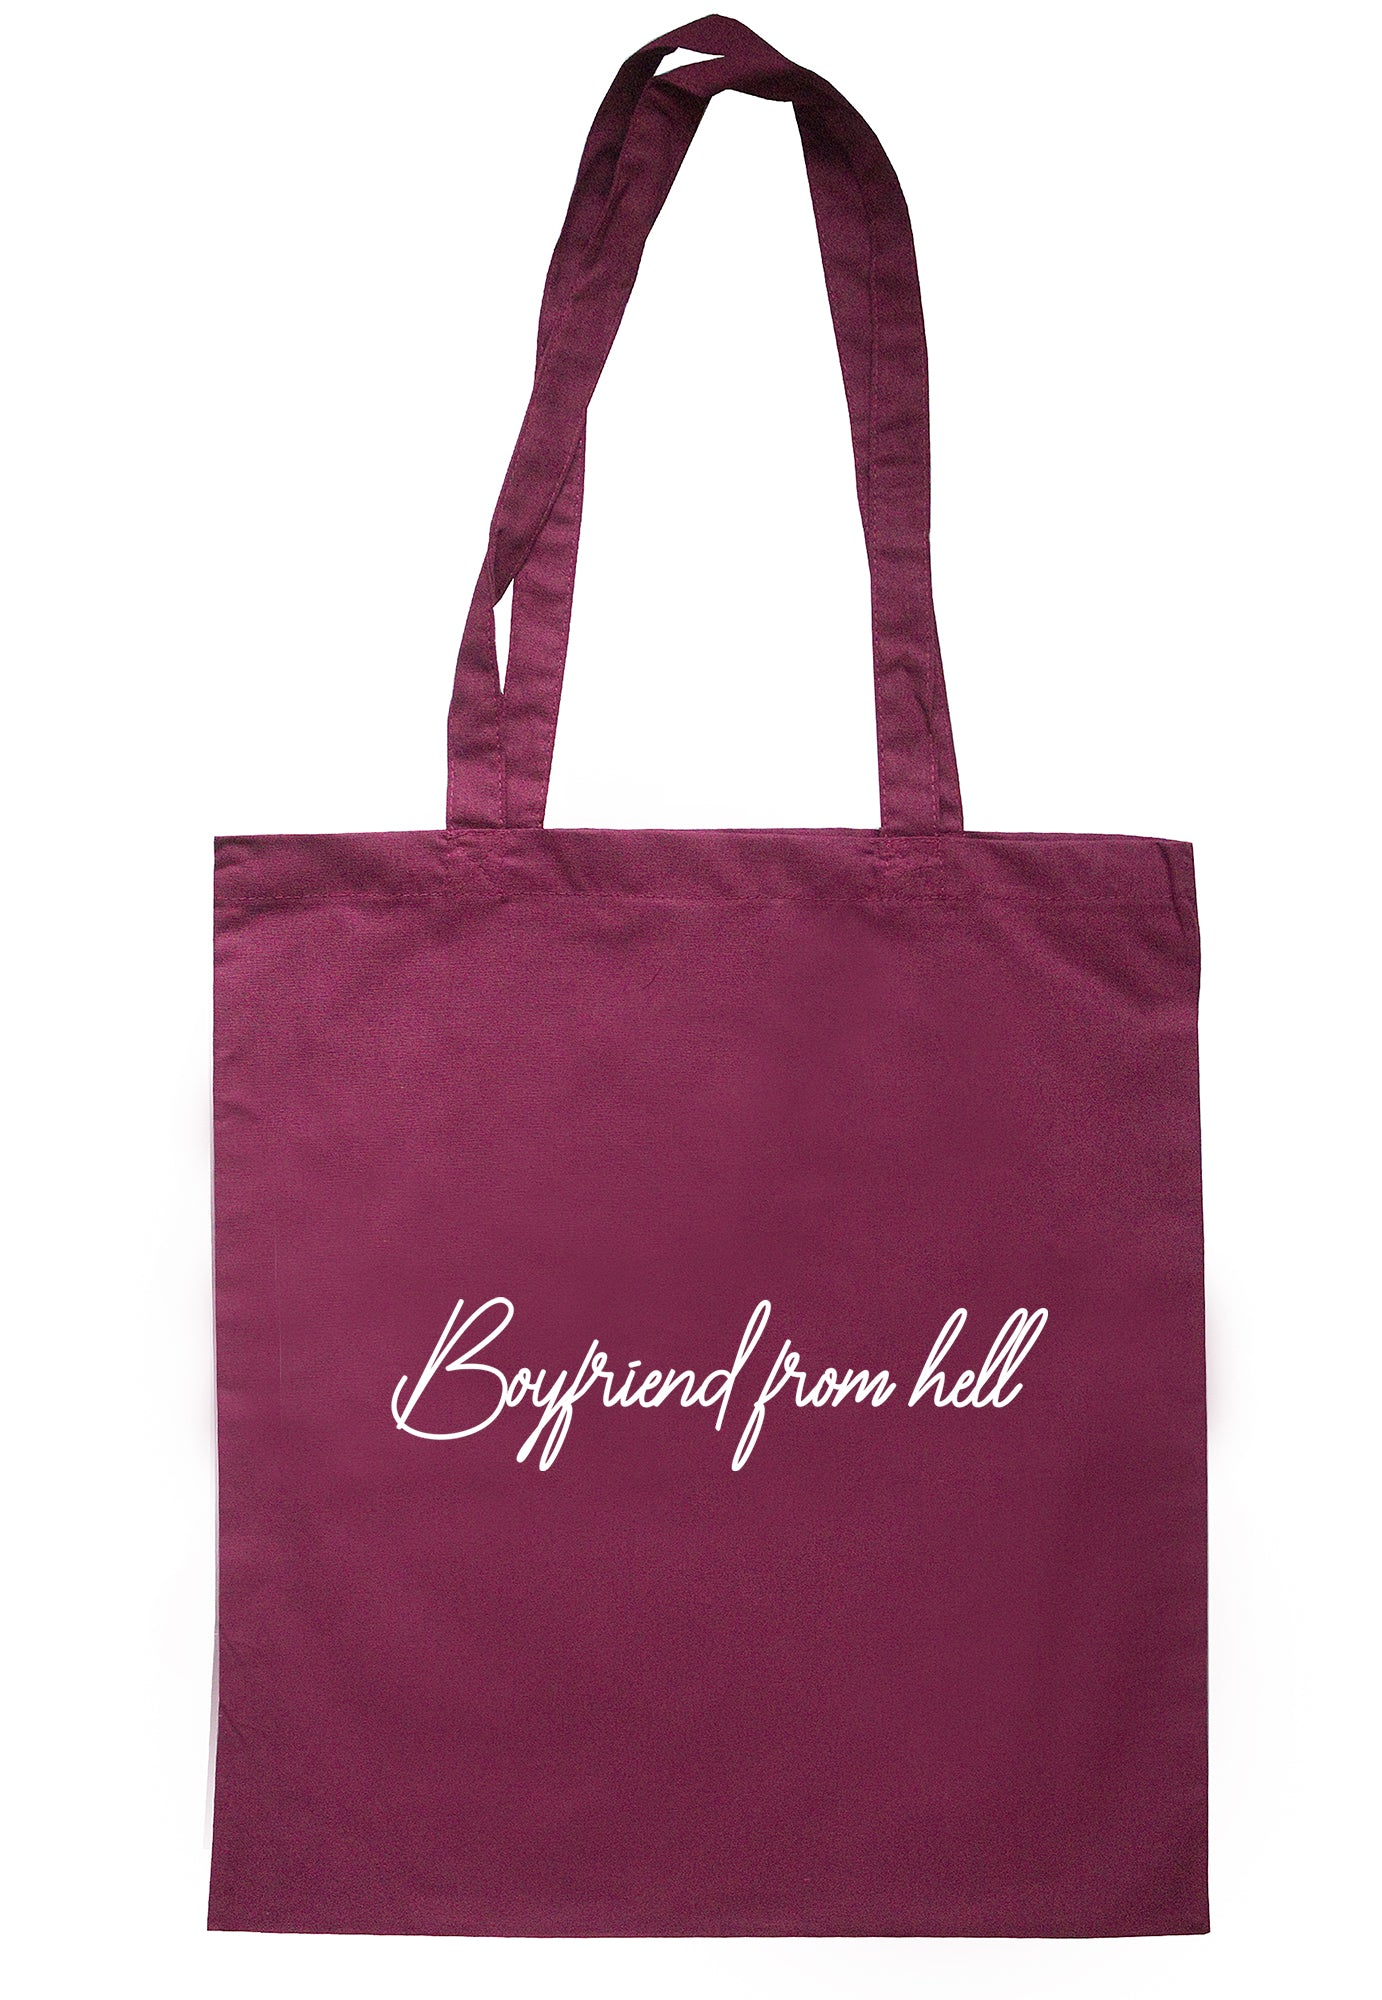 Boyfriend From Hell Tote Bag S1086 - Illustrated Identity Ltd.